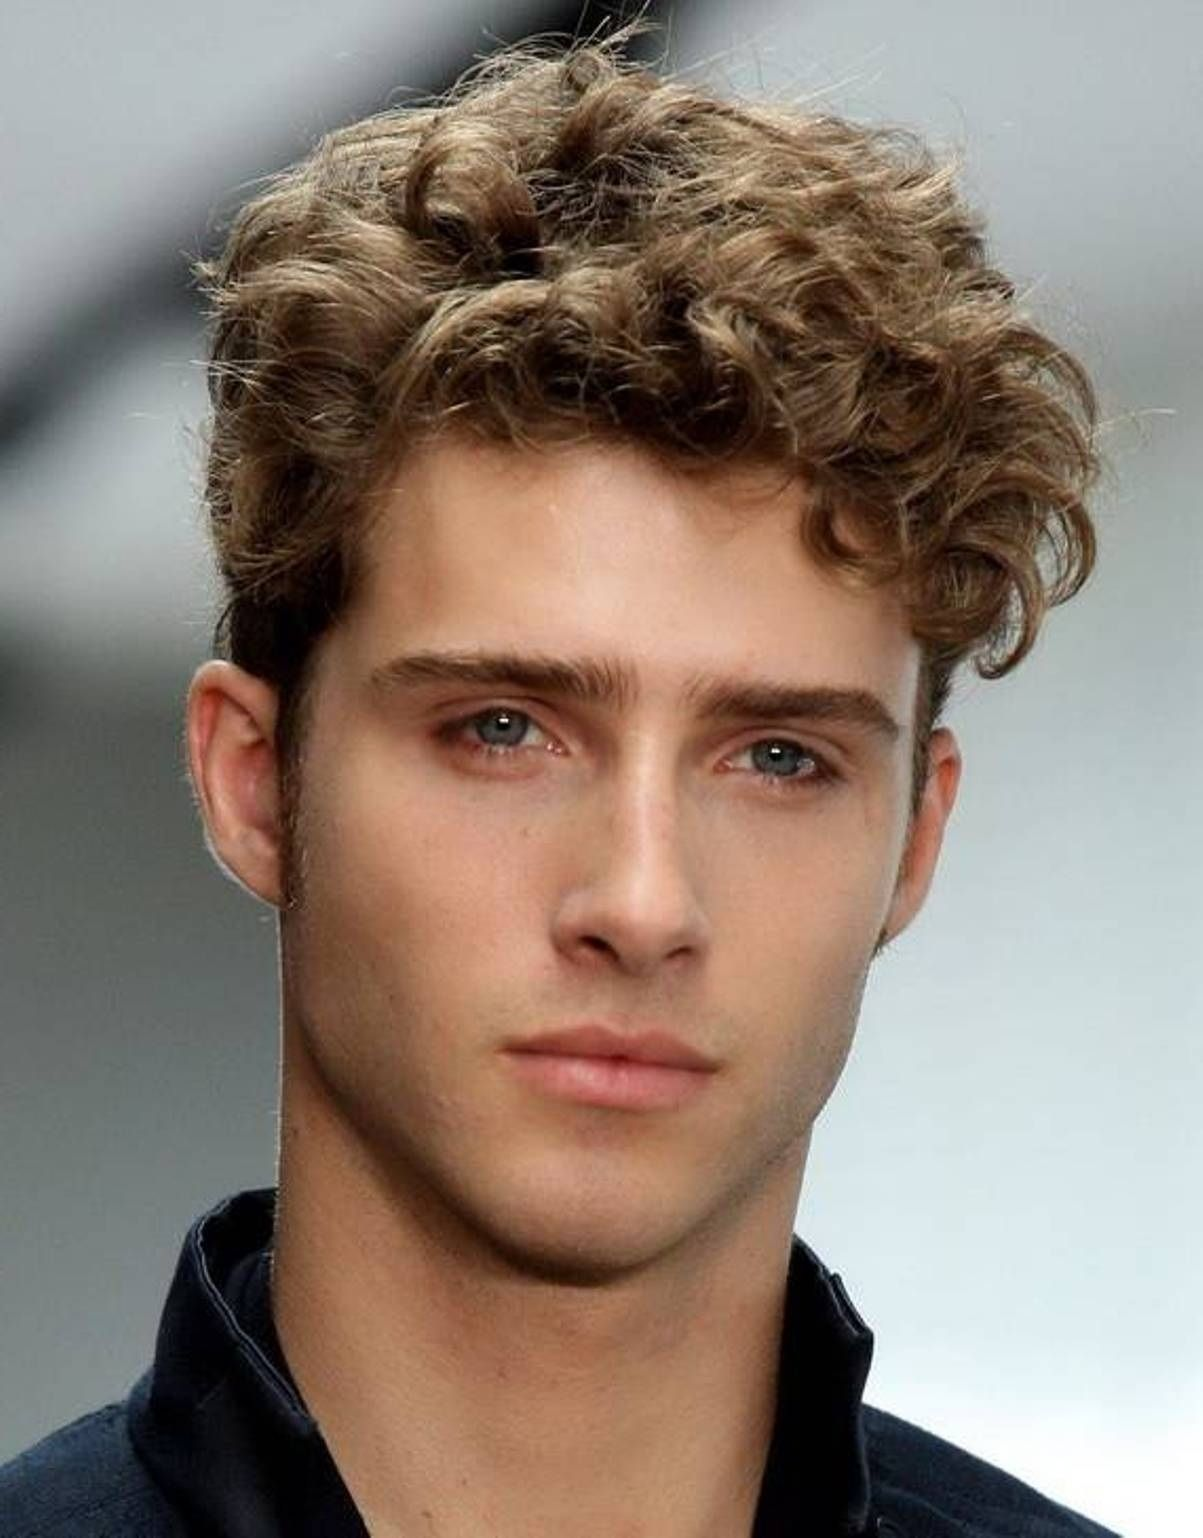 15 Mens Haircuts for Thick Hair   Mens Hairstyles 2017 besides  besides 60 Men's Medium Wavy Hairstyles   Manly Cuts With Character in addition 30 Curly Mens Hairstyles 2014 – 2015   Curly Men Hairstyles besides Thick curly hairstyles men   Hairstyle foк women   man as well 75 Men's Medium Hairstyles For Thick Hair   Manly Cut Ideas further 25  best Thick coarse hair ideas on Pinterest   Choppy layered additionally Messieurs  les 10 pièces clé d'une garde robe réussie   Curly hair furthermore Best 25  Frizzy hair men ideas on Pinterest   Avant garde together with Curly Hairstyles for Men Are Many Ways to Curly Hair to Wear likewise . on haircuts for thick curly hair male